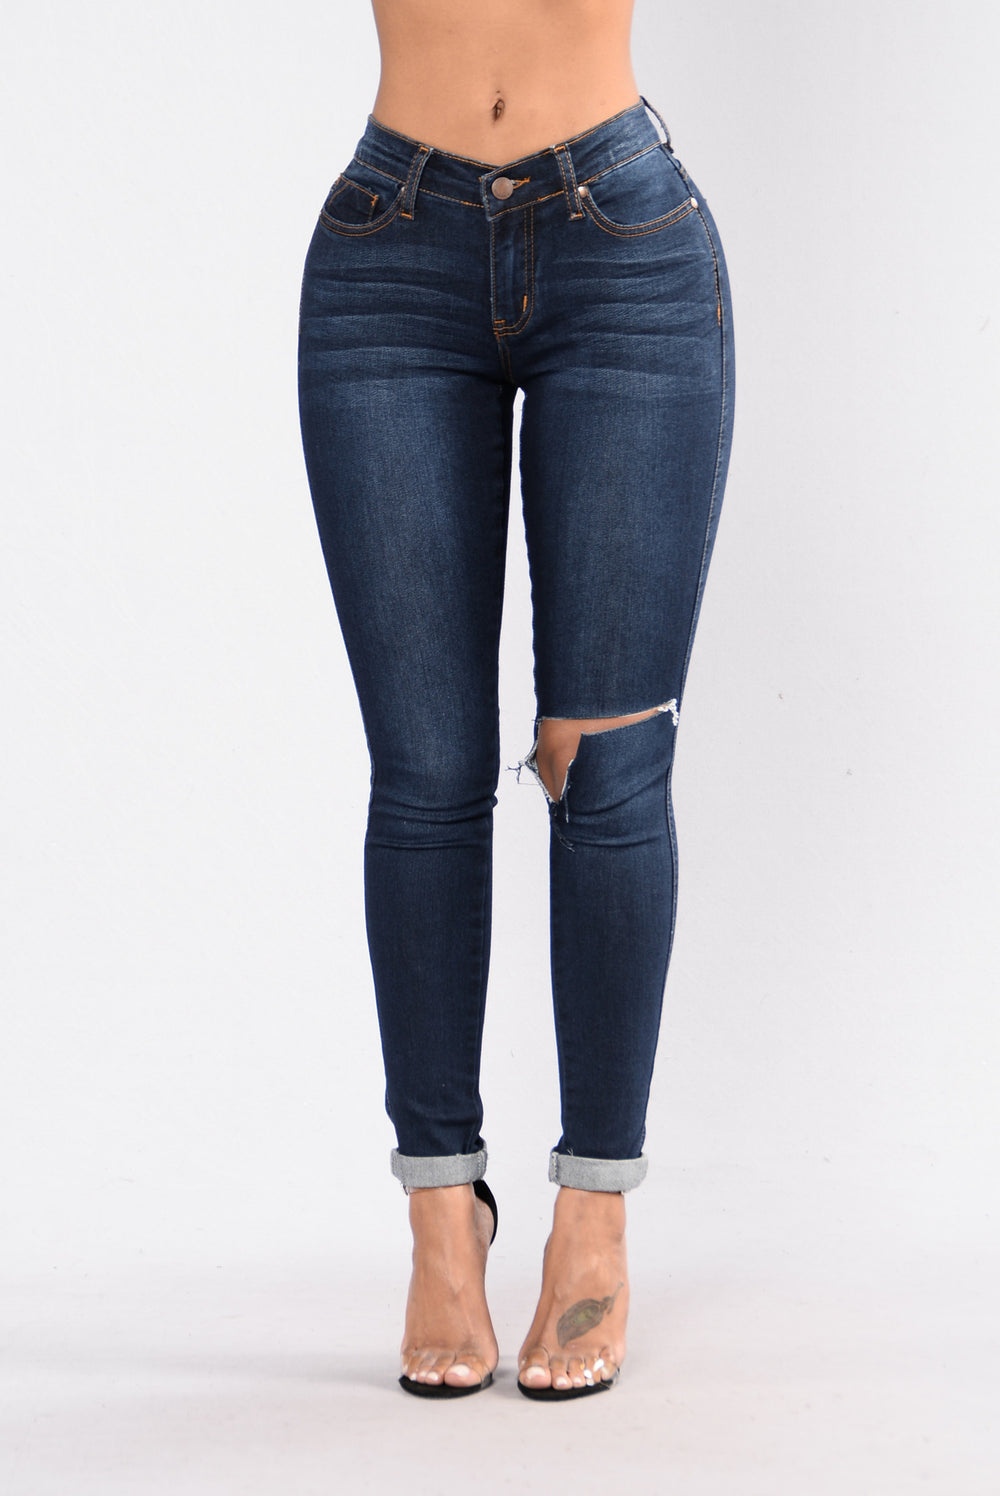 Ready For The Weekend Jeans - Dark